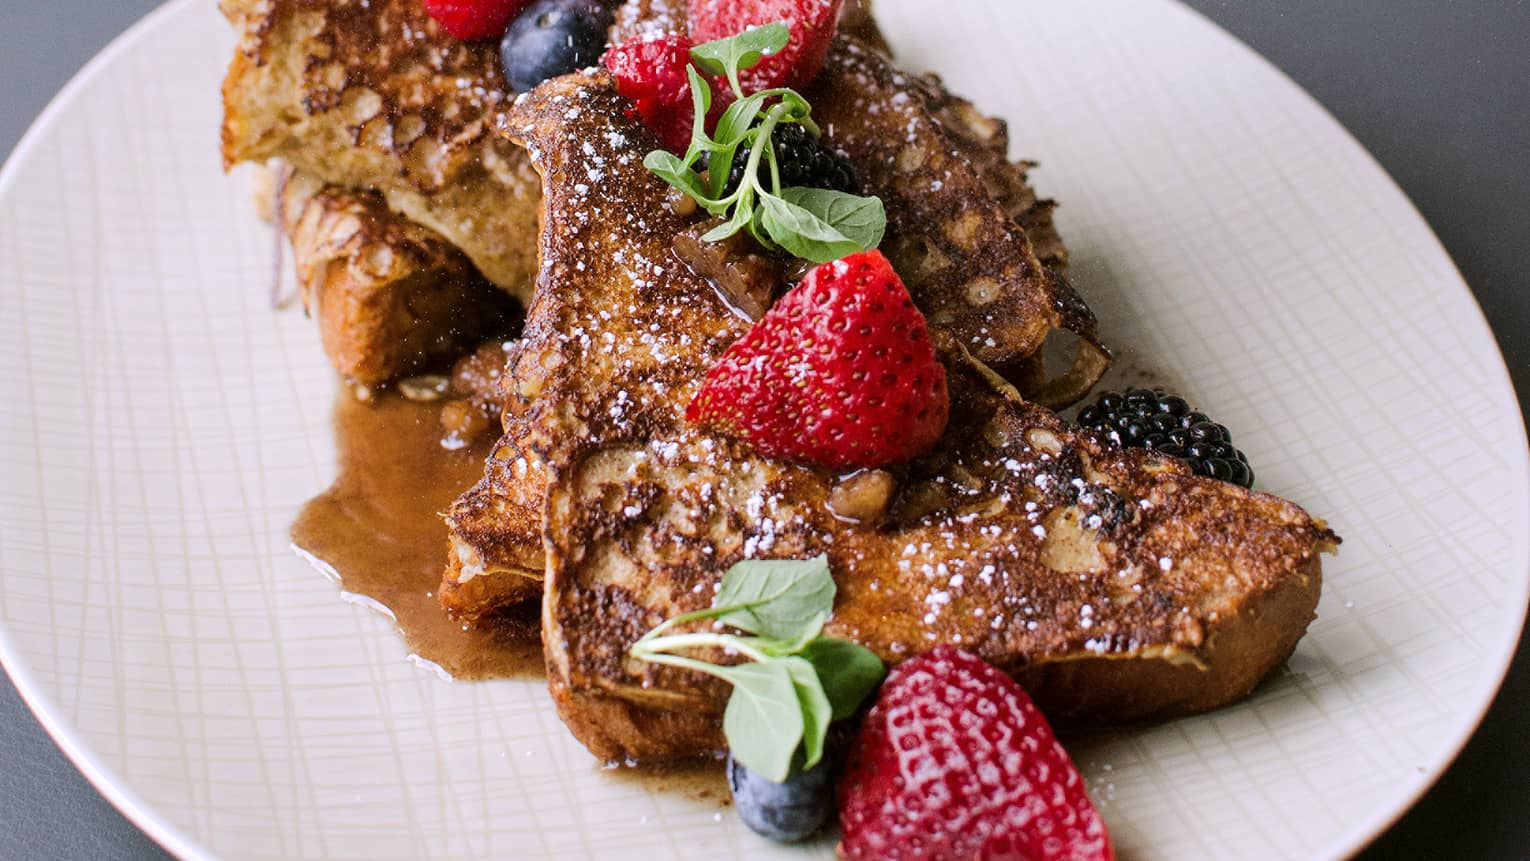 French toast topped with fresh berries, greens, syrup on white plate